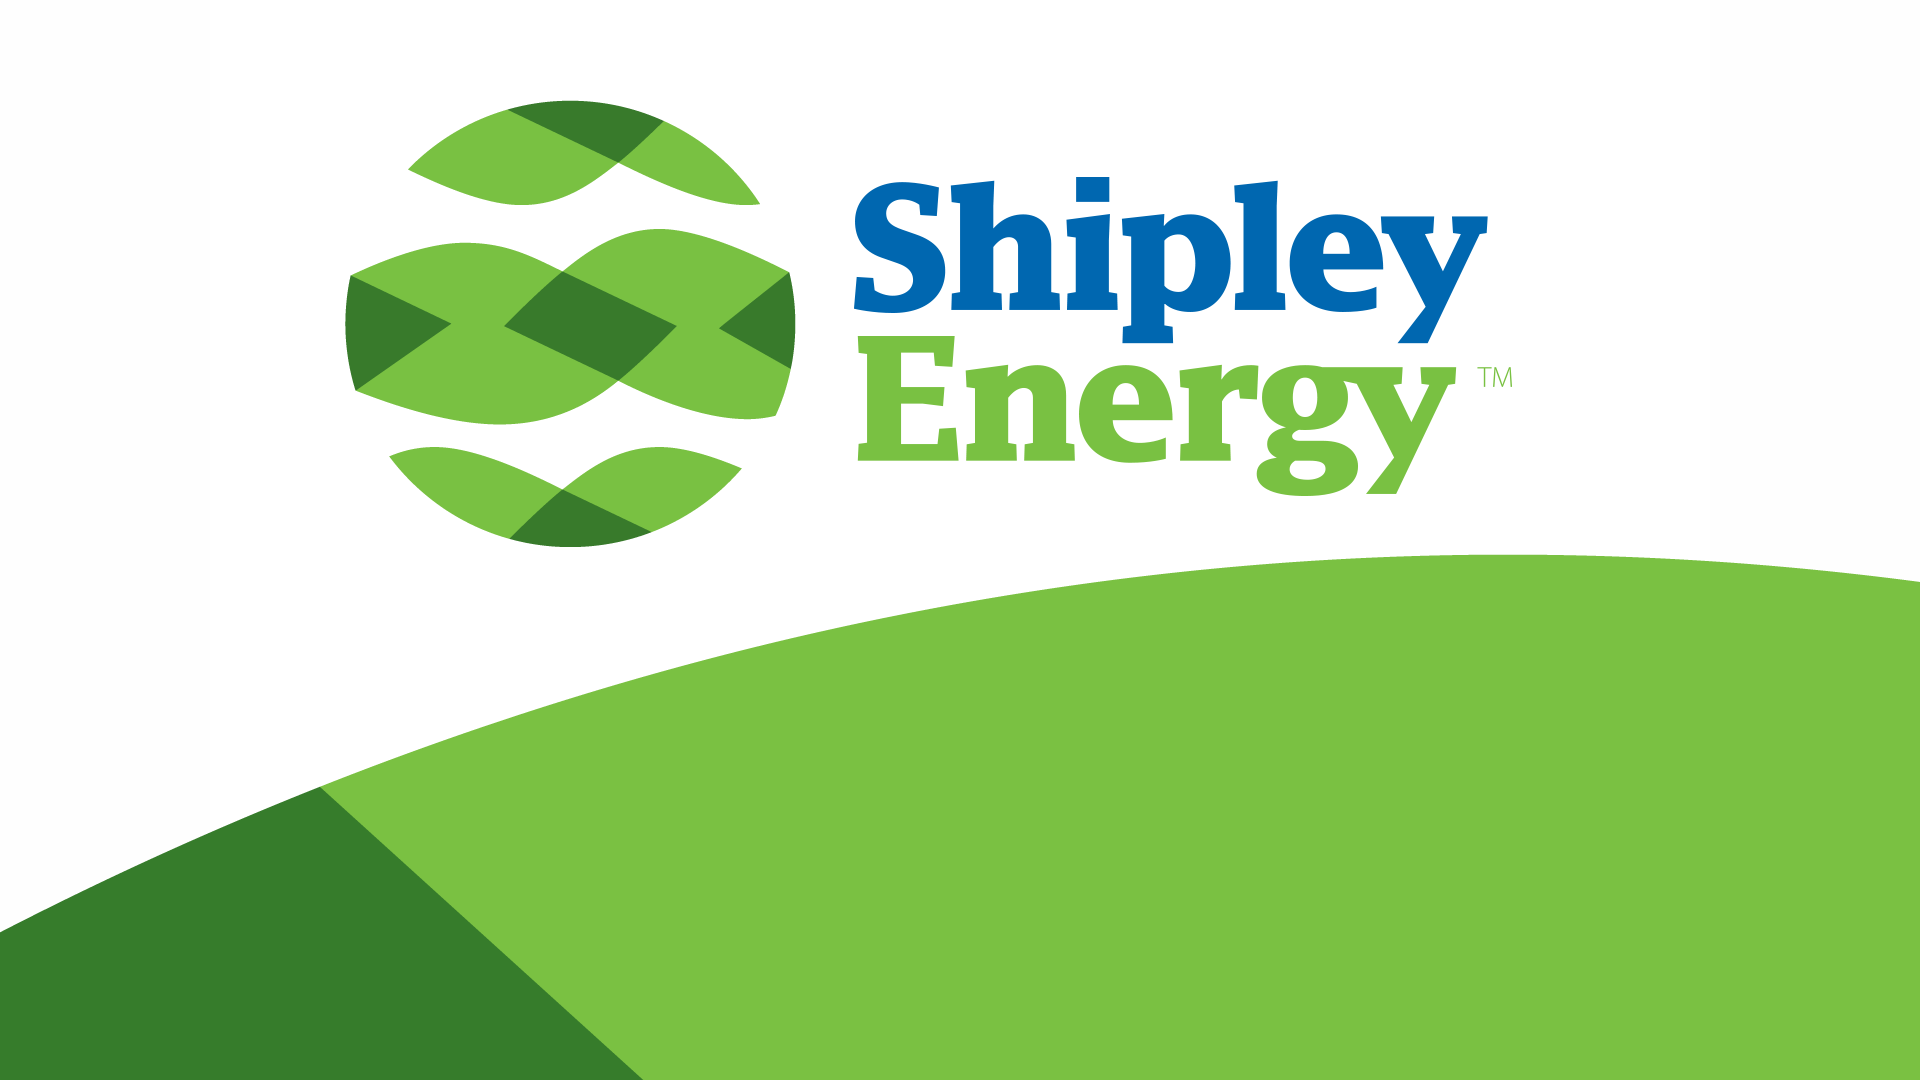 Shipley Energy Rebrand Bob Wolf Russell Volckmann, Romantic Brand Bureau, Final Logo Lockup with Graphical Device